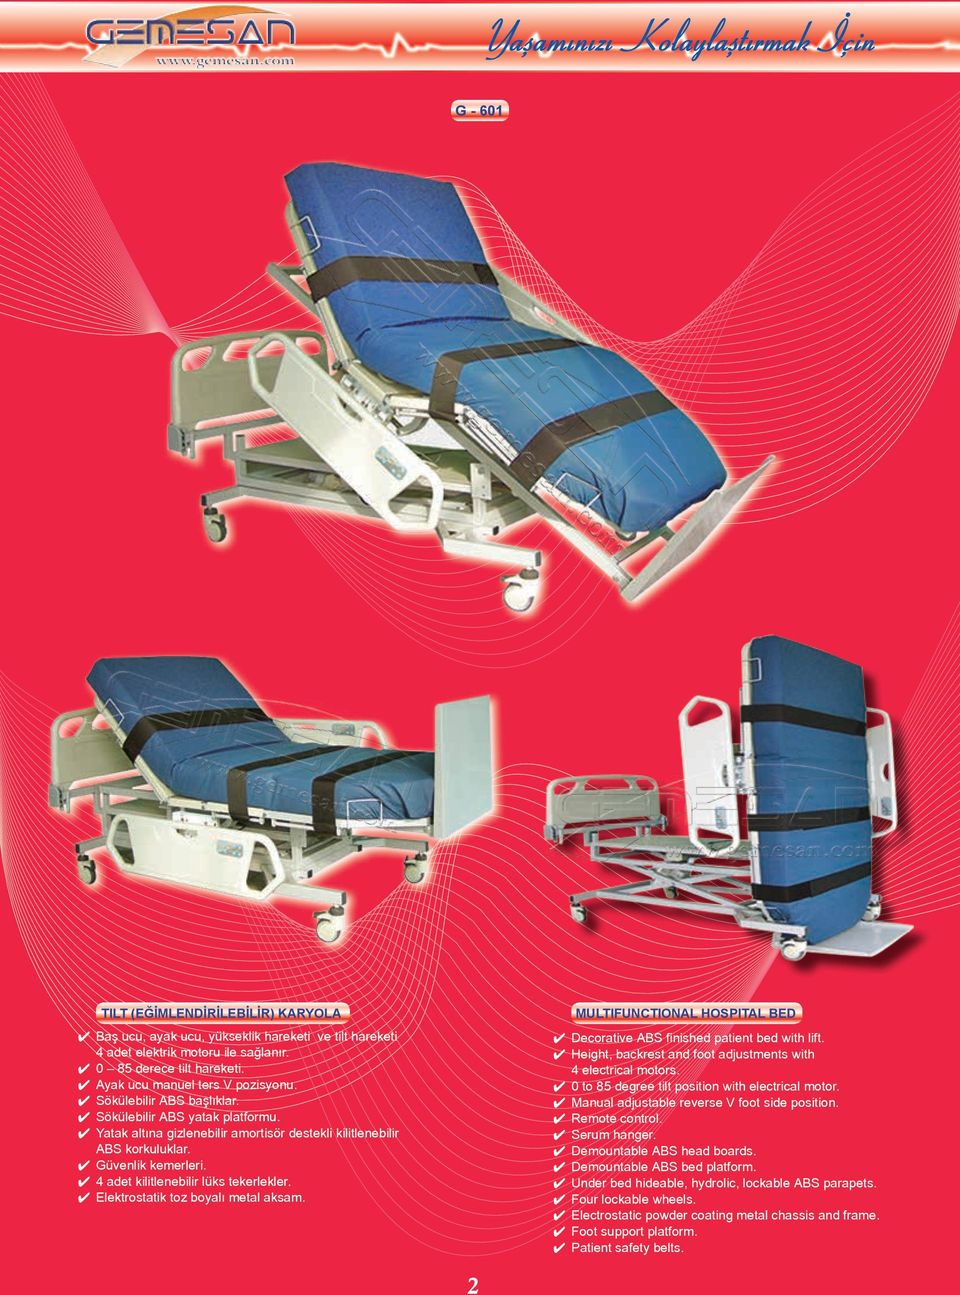 MULTIFUNCTIONAL HOSPITAL BED Decorative ABS finished patient bed with lift. Height, backrest and foot adjustments with 4 electrical motors.